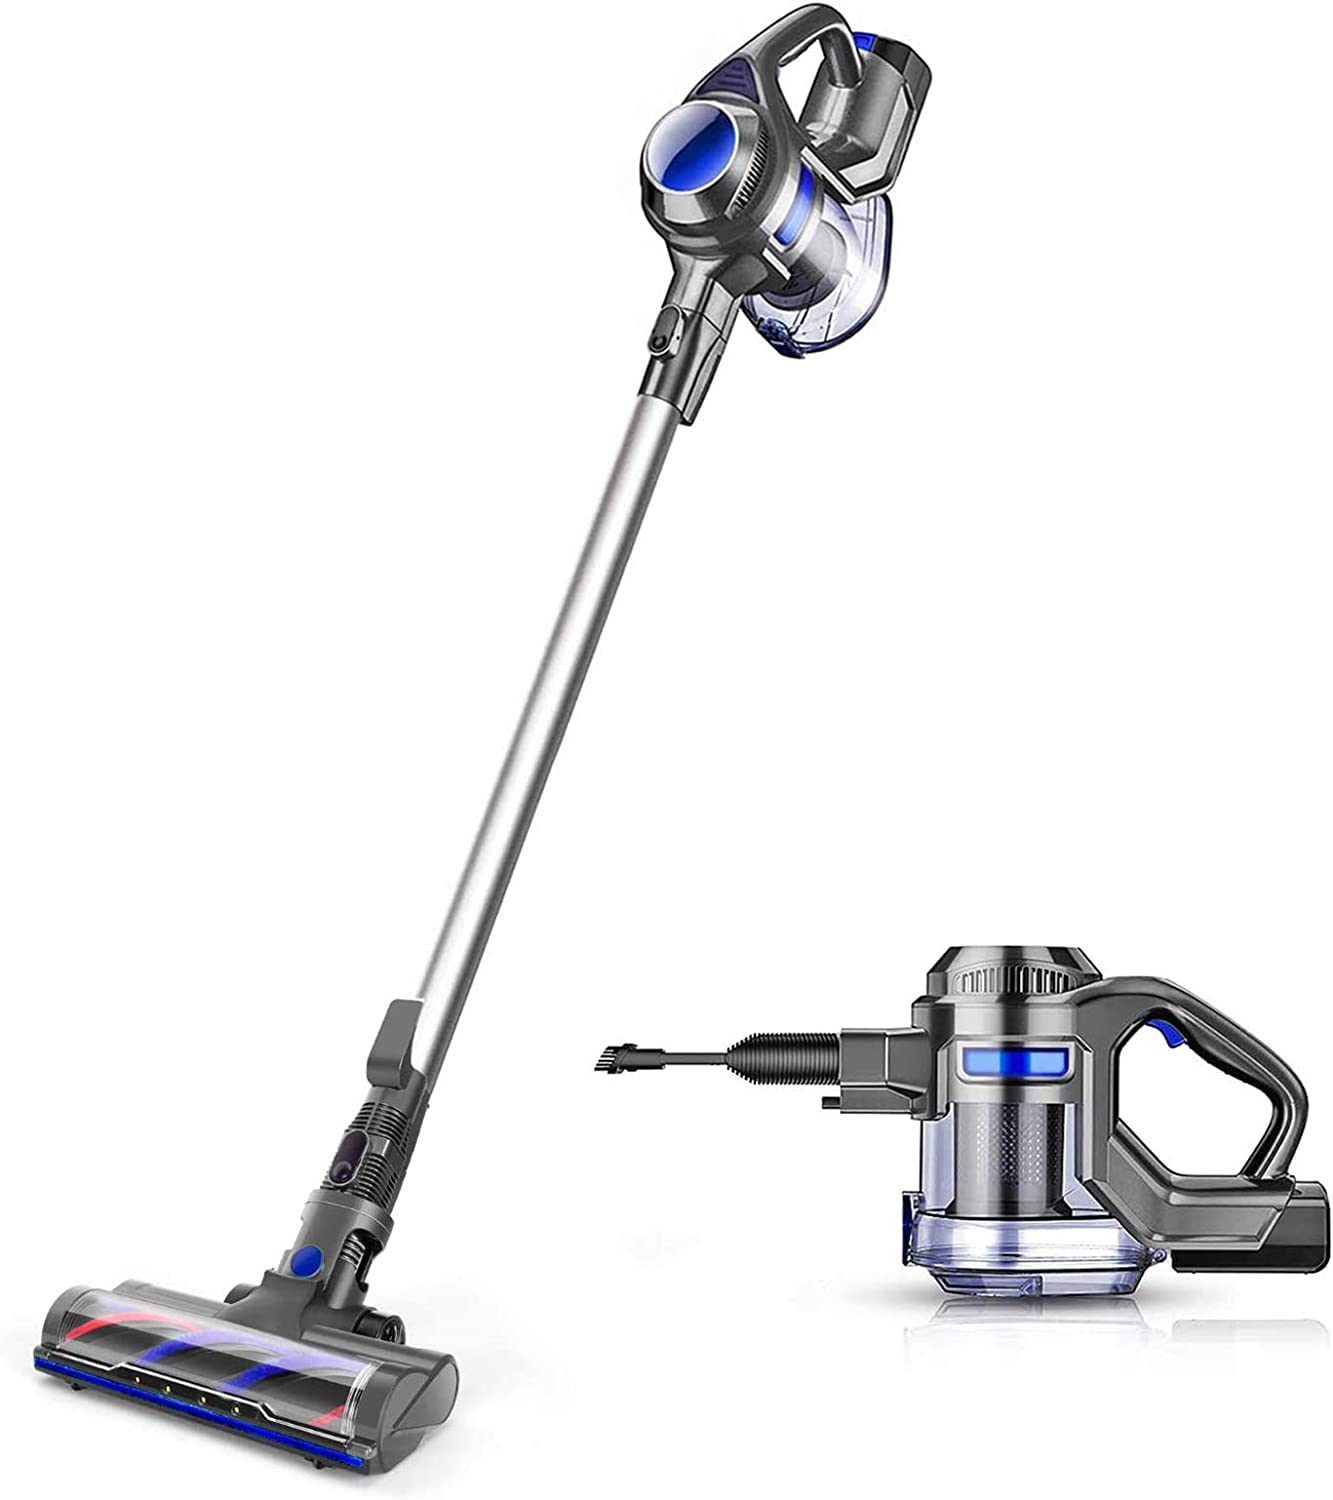 MOOSOO Cordless Vacuum 4-in-1 Suction Stick